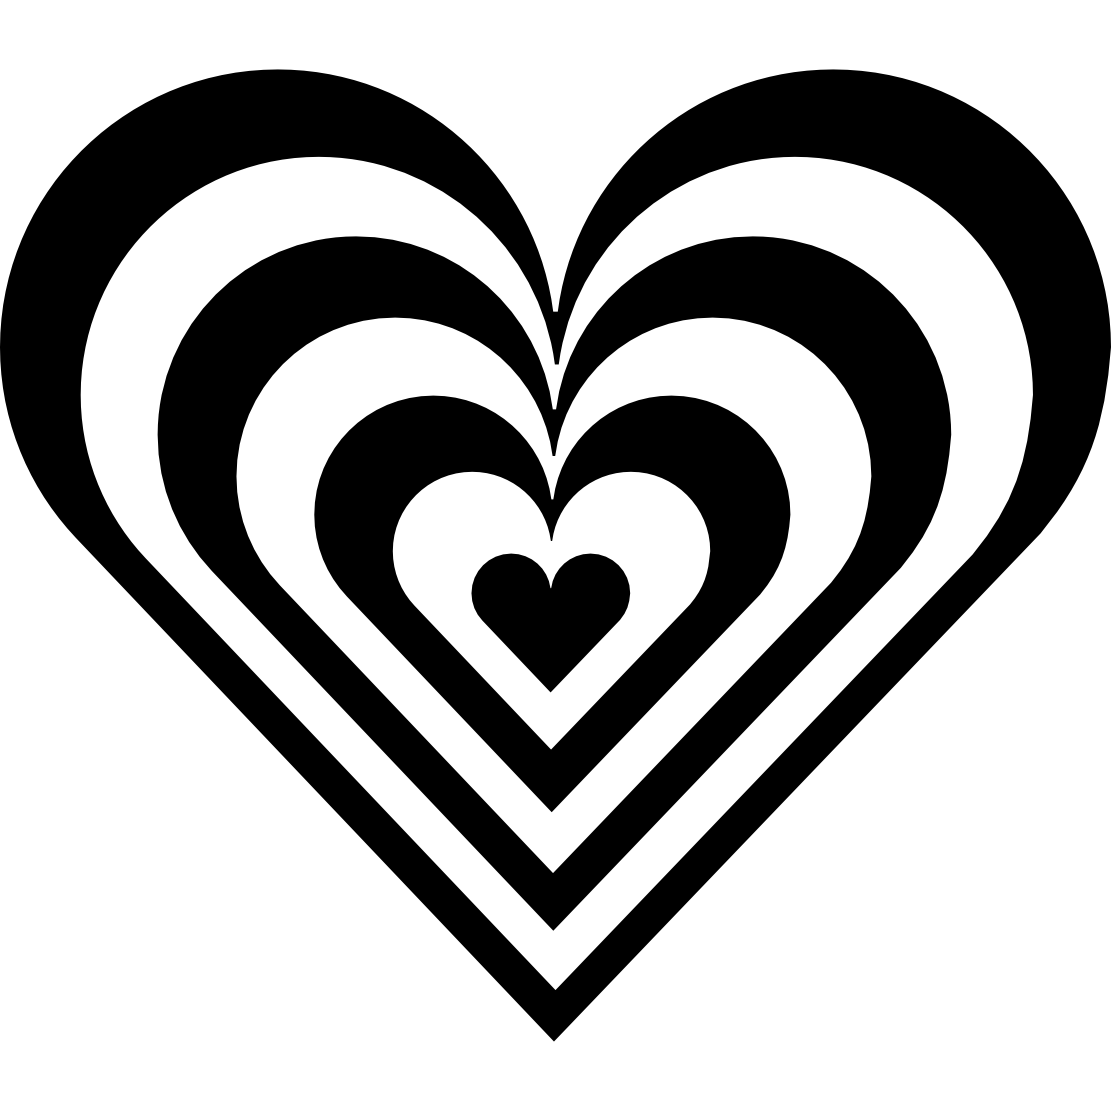 ... Black And White Hearts Clip Art ...-... Black And White Hearts Clip Art ...-8